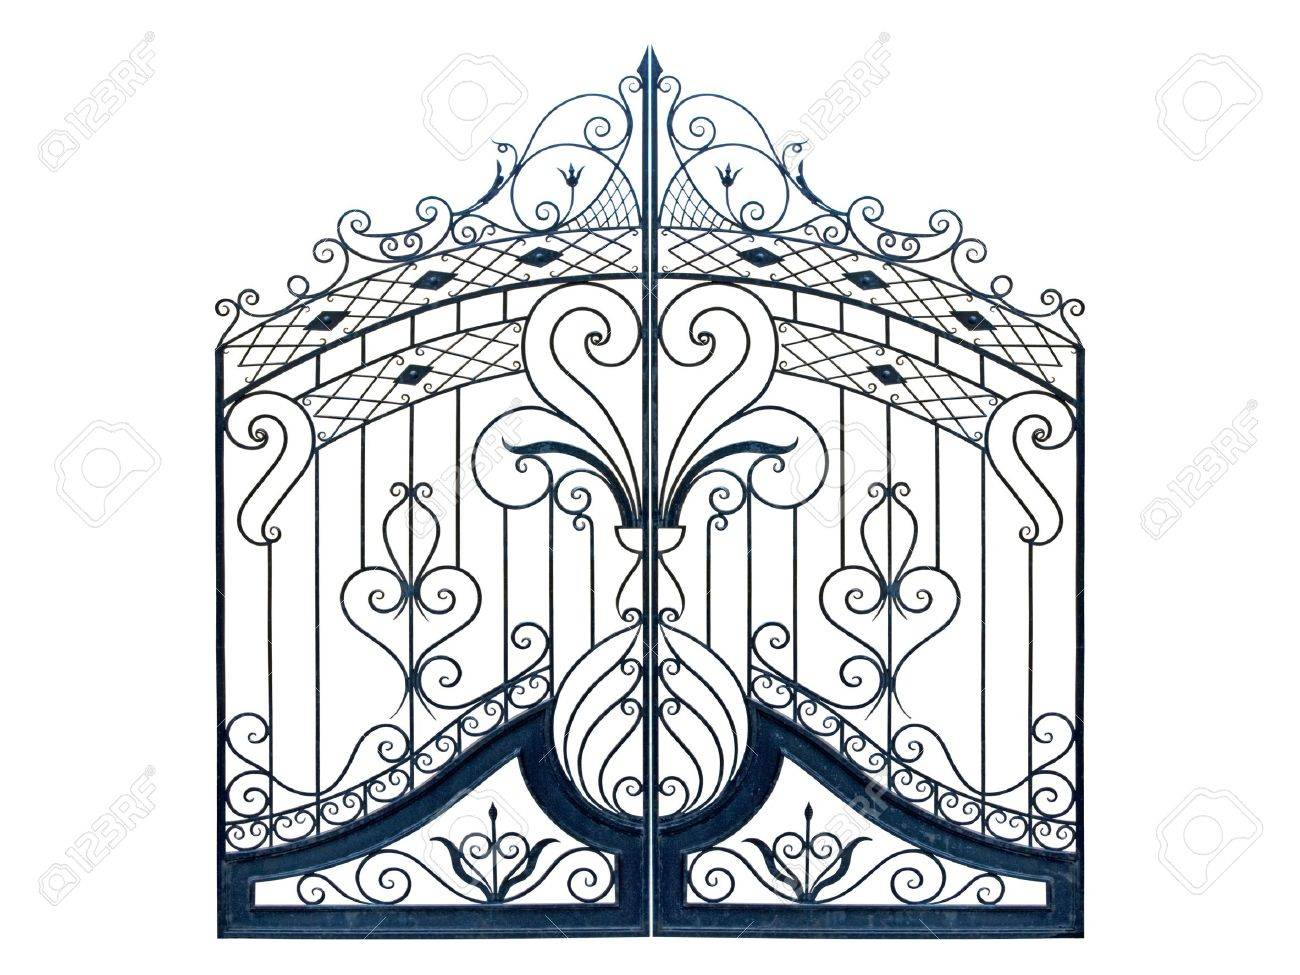 Old-time forged decorative gates. Isolated over white background. Stock Photo - 8175090